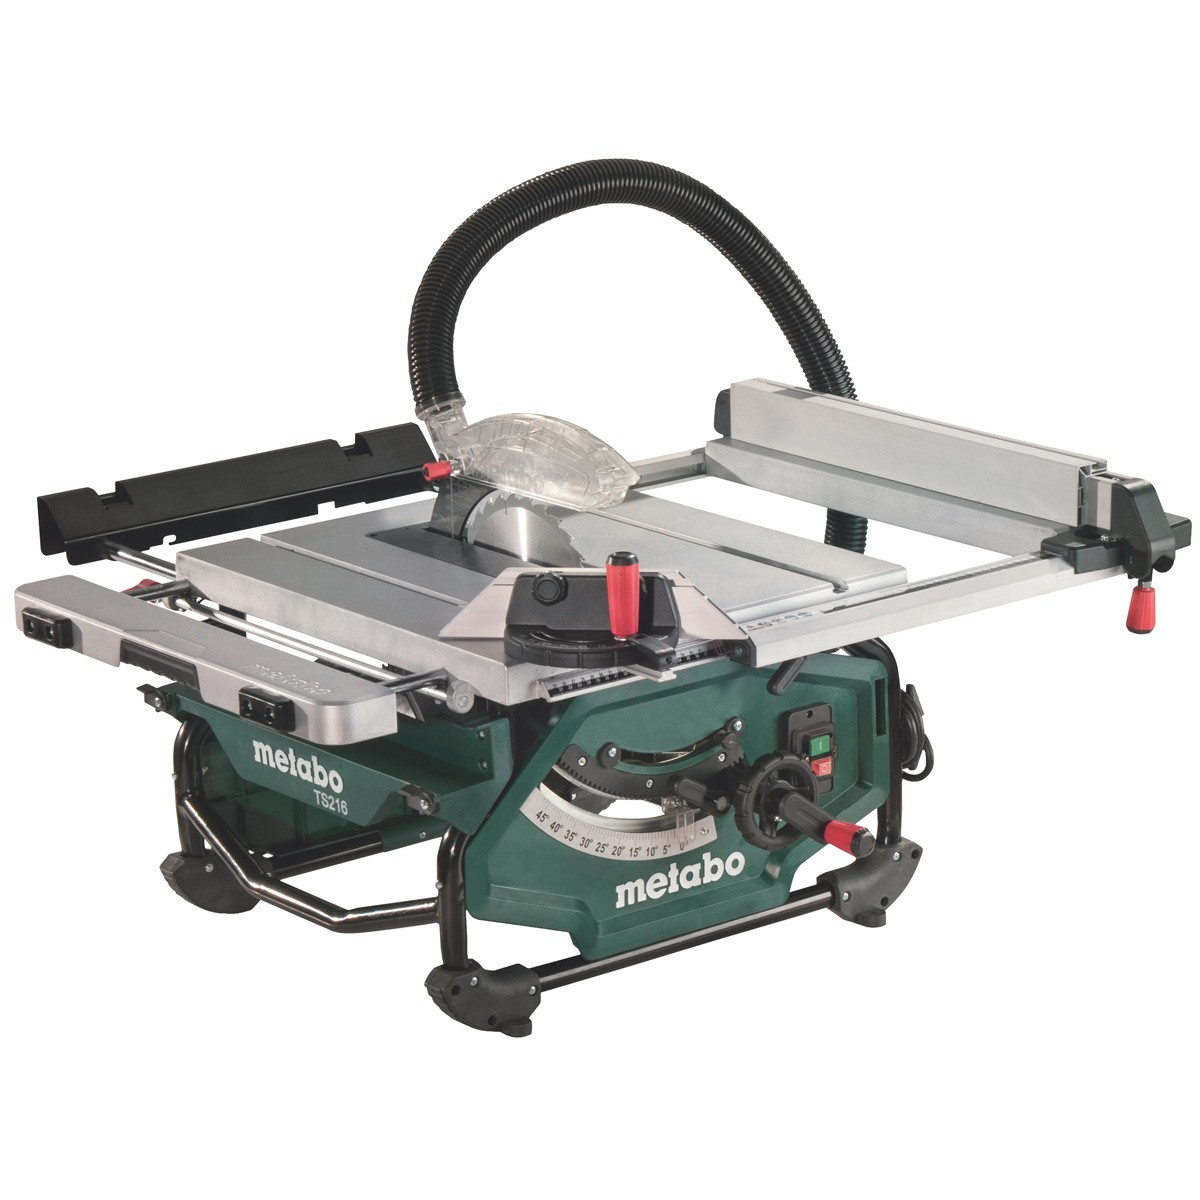 Metabo Ts 216 Floor Table Circular Saw 240v Powertool World